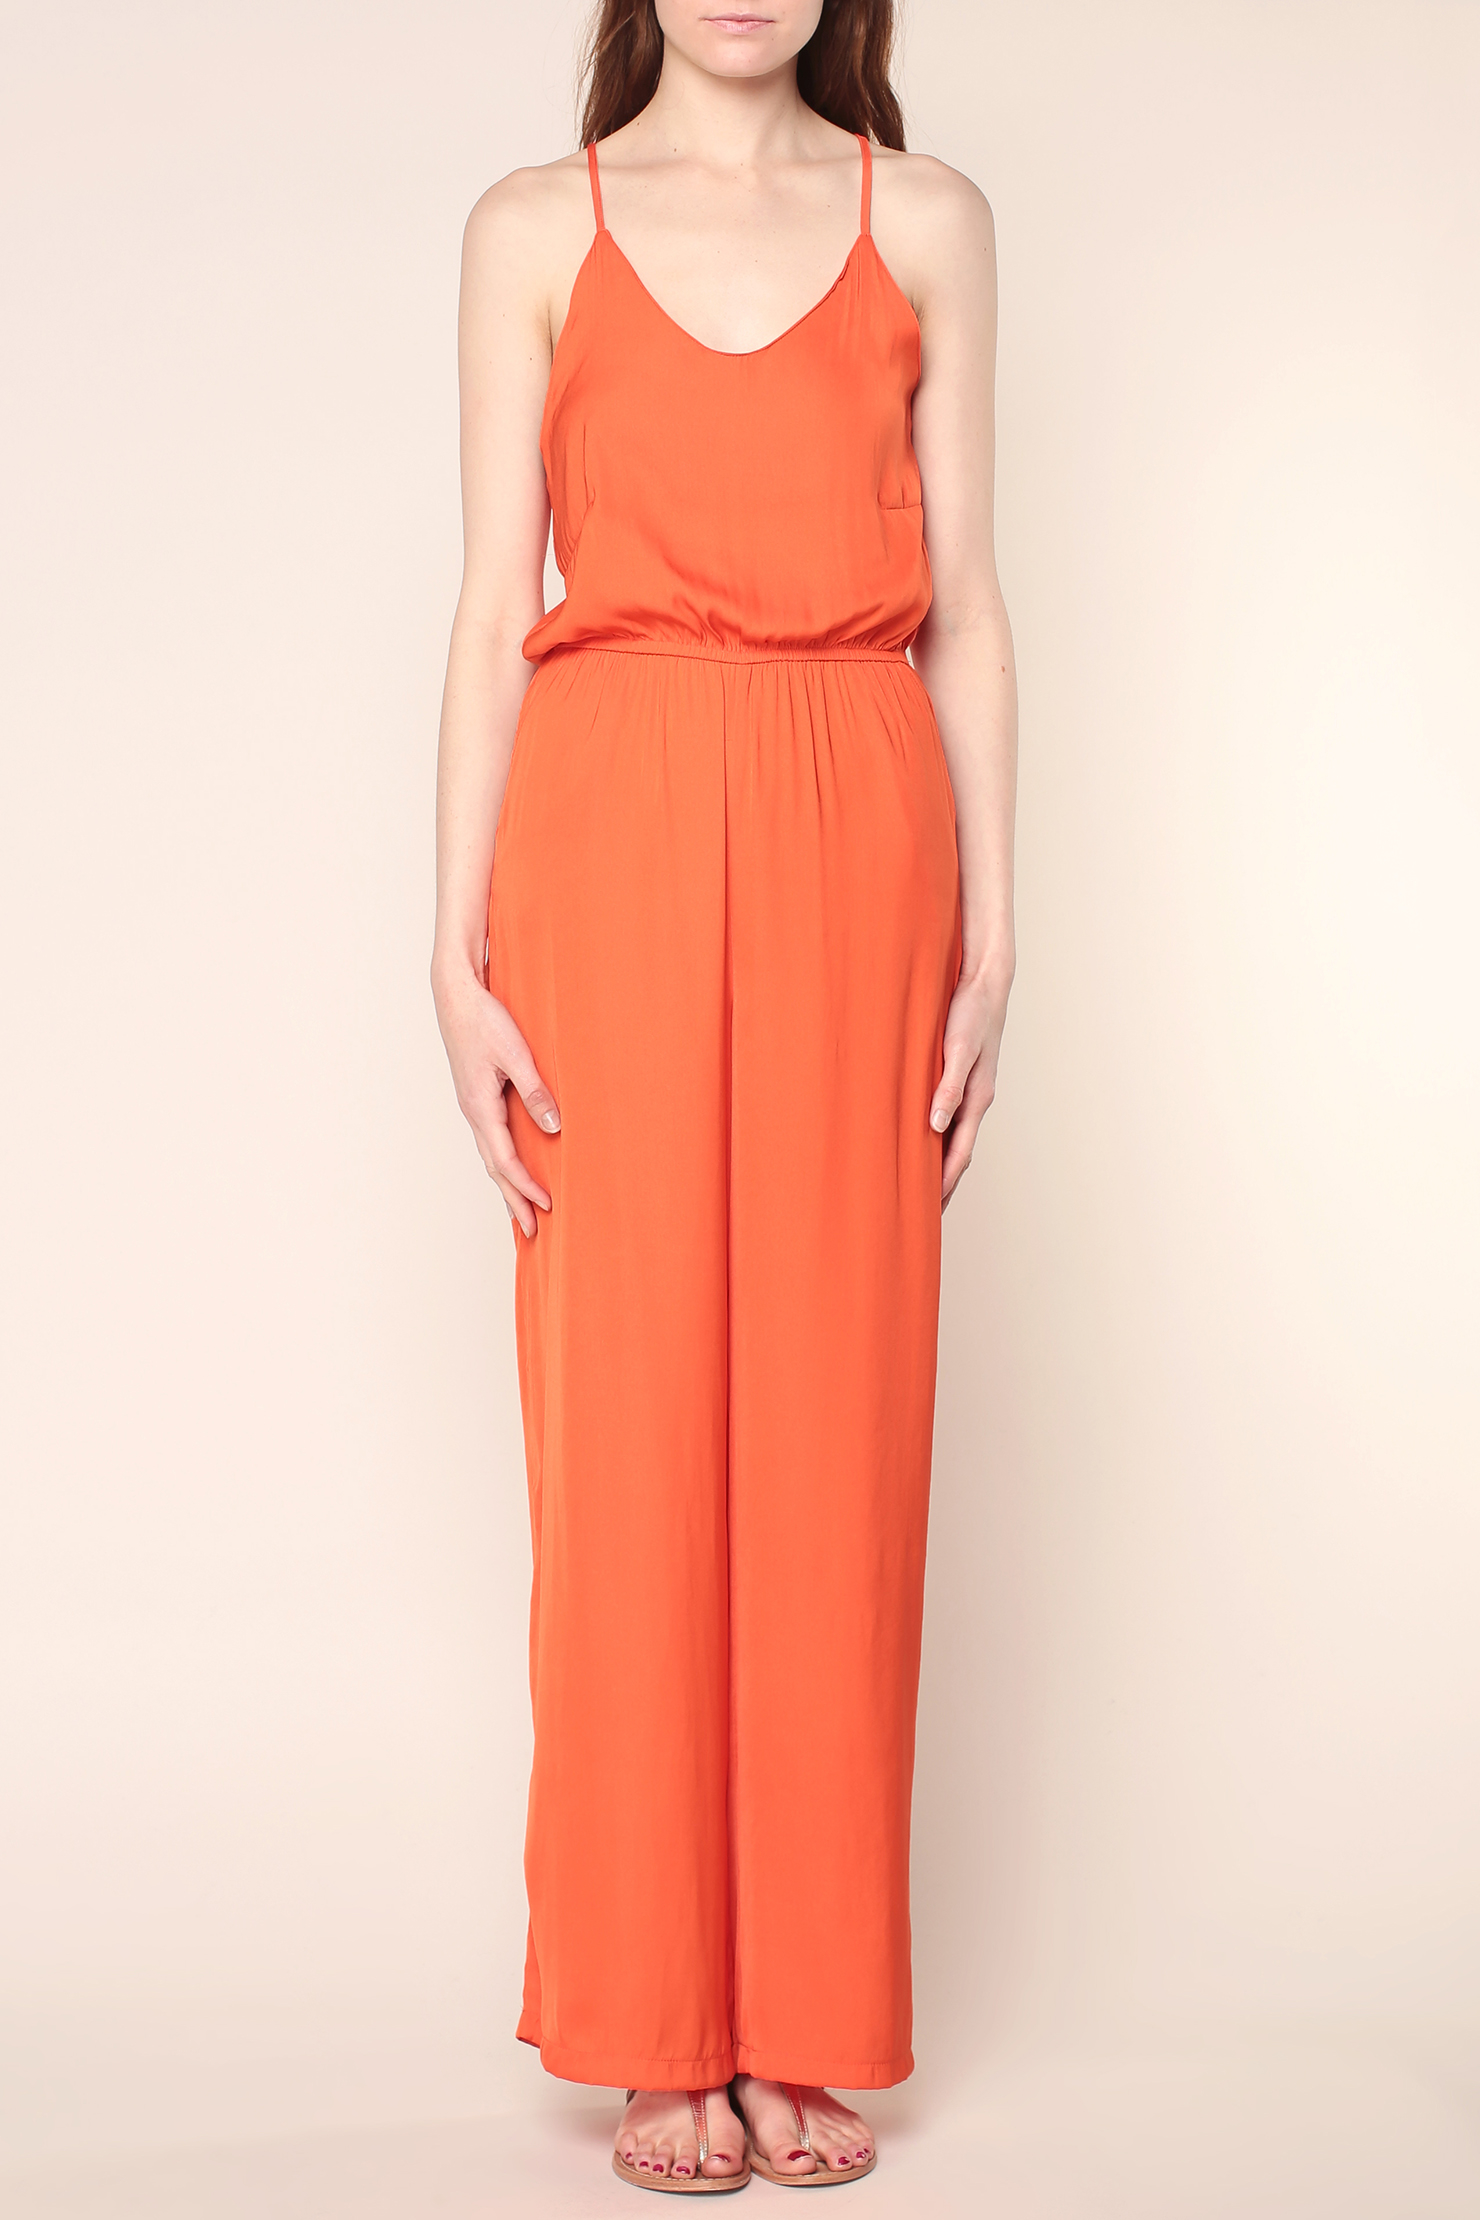 vero moda jumpsuit in orange lyst. Black Bedroom Furniture Sets. Home Design Ideas